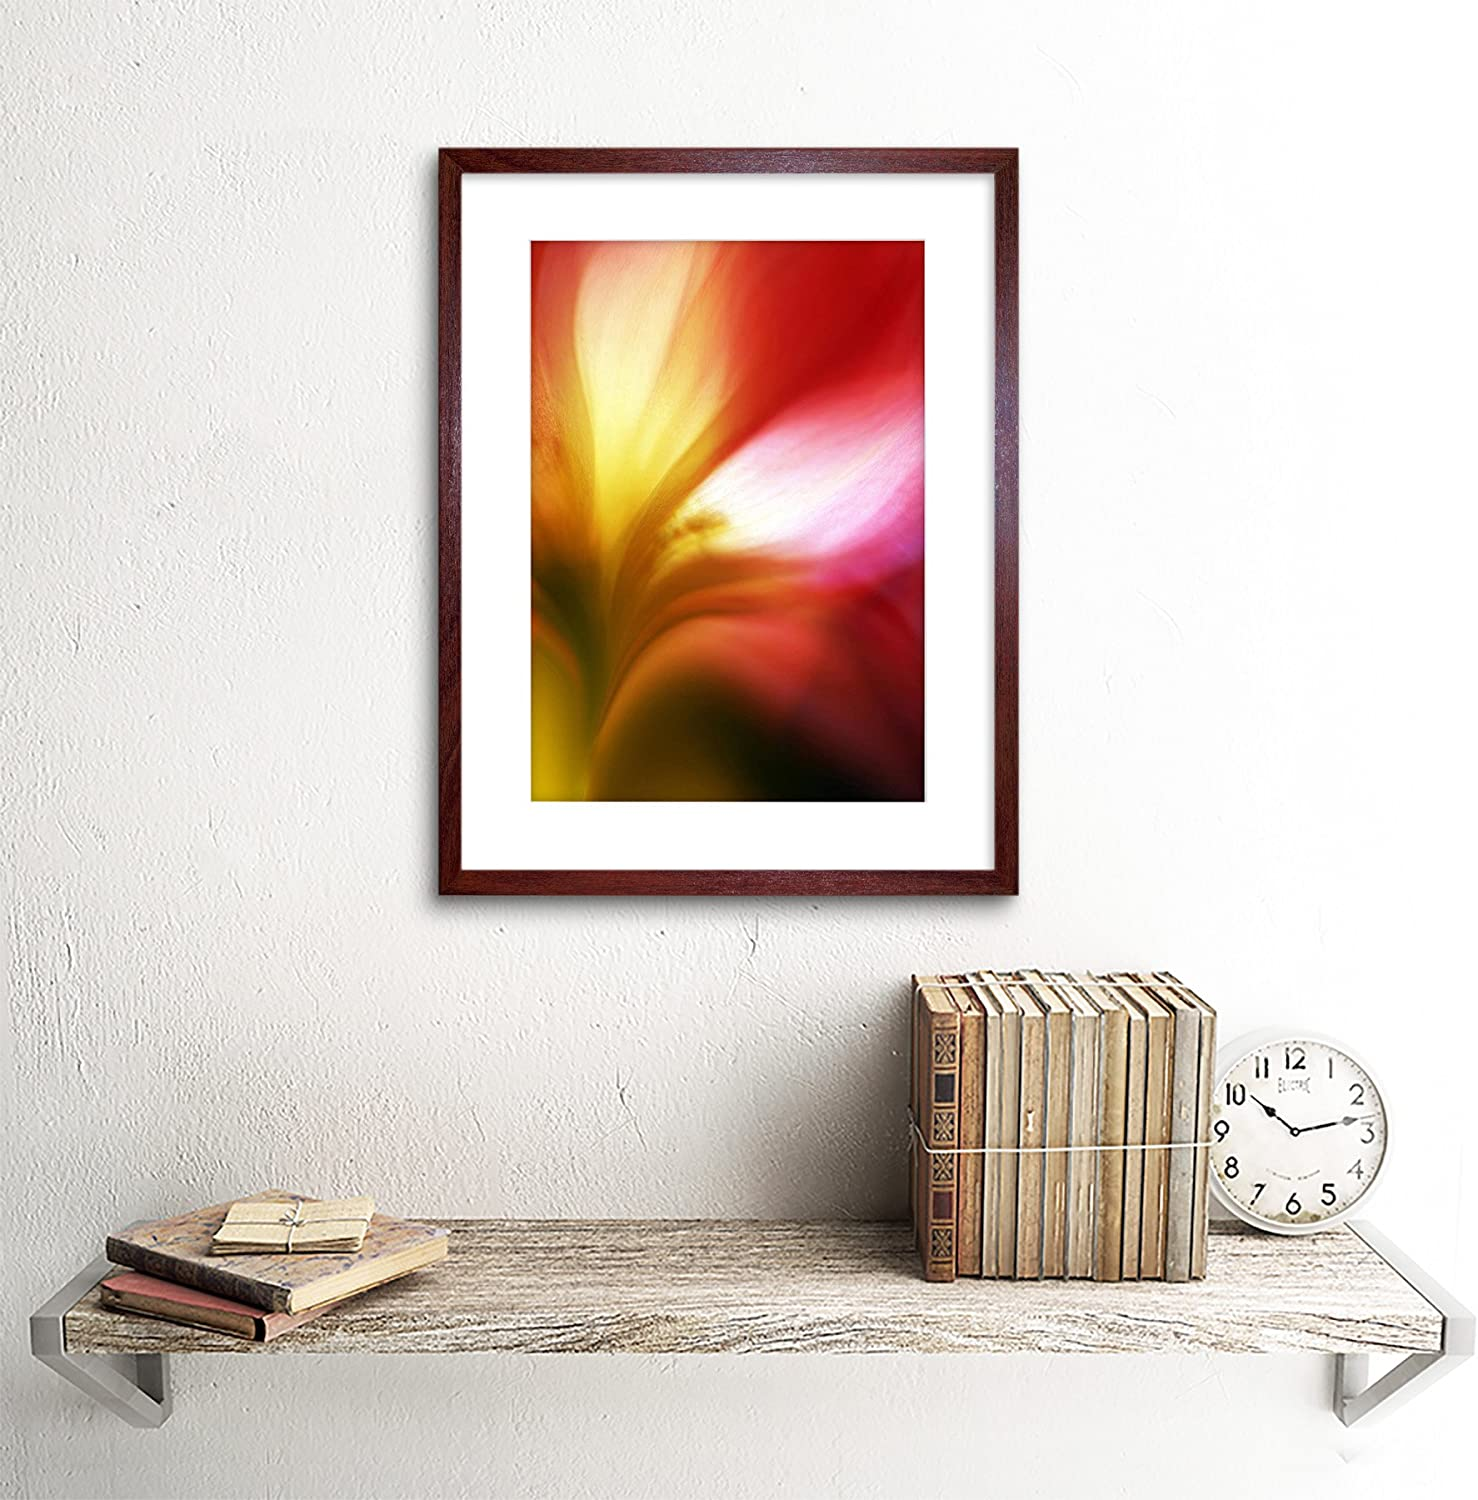 SOFT SENSUAL ABSTRACT FLOWER COLOURFUL ART PRINT POSTER PICTURE BMP457A